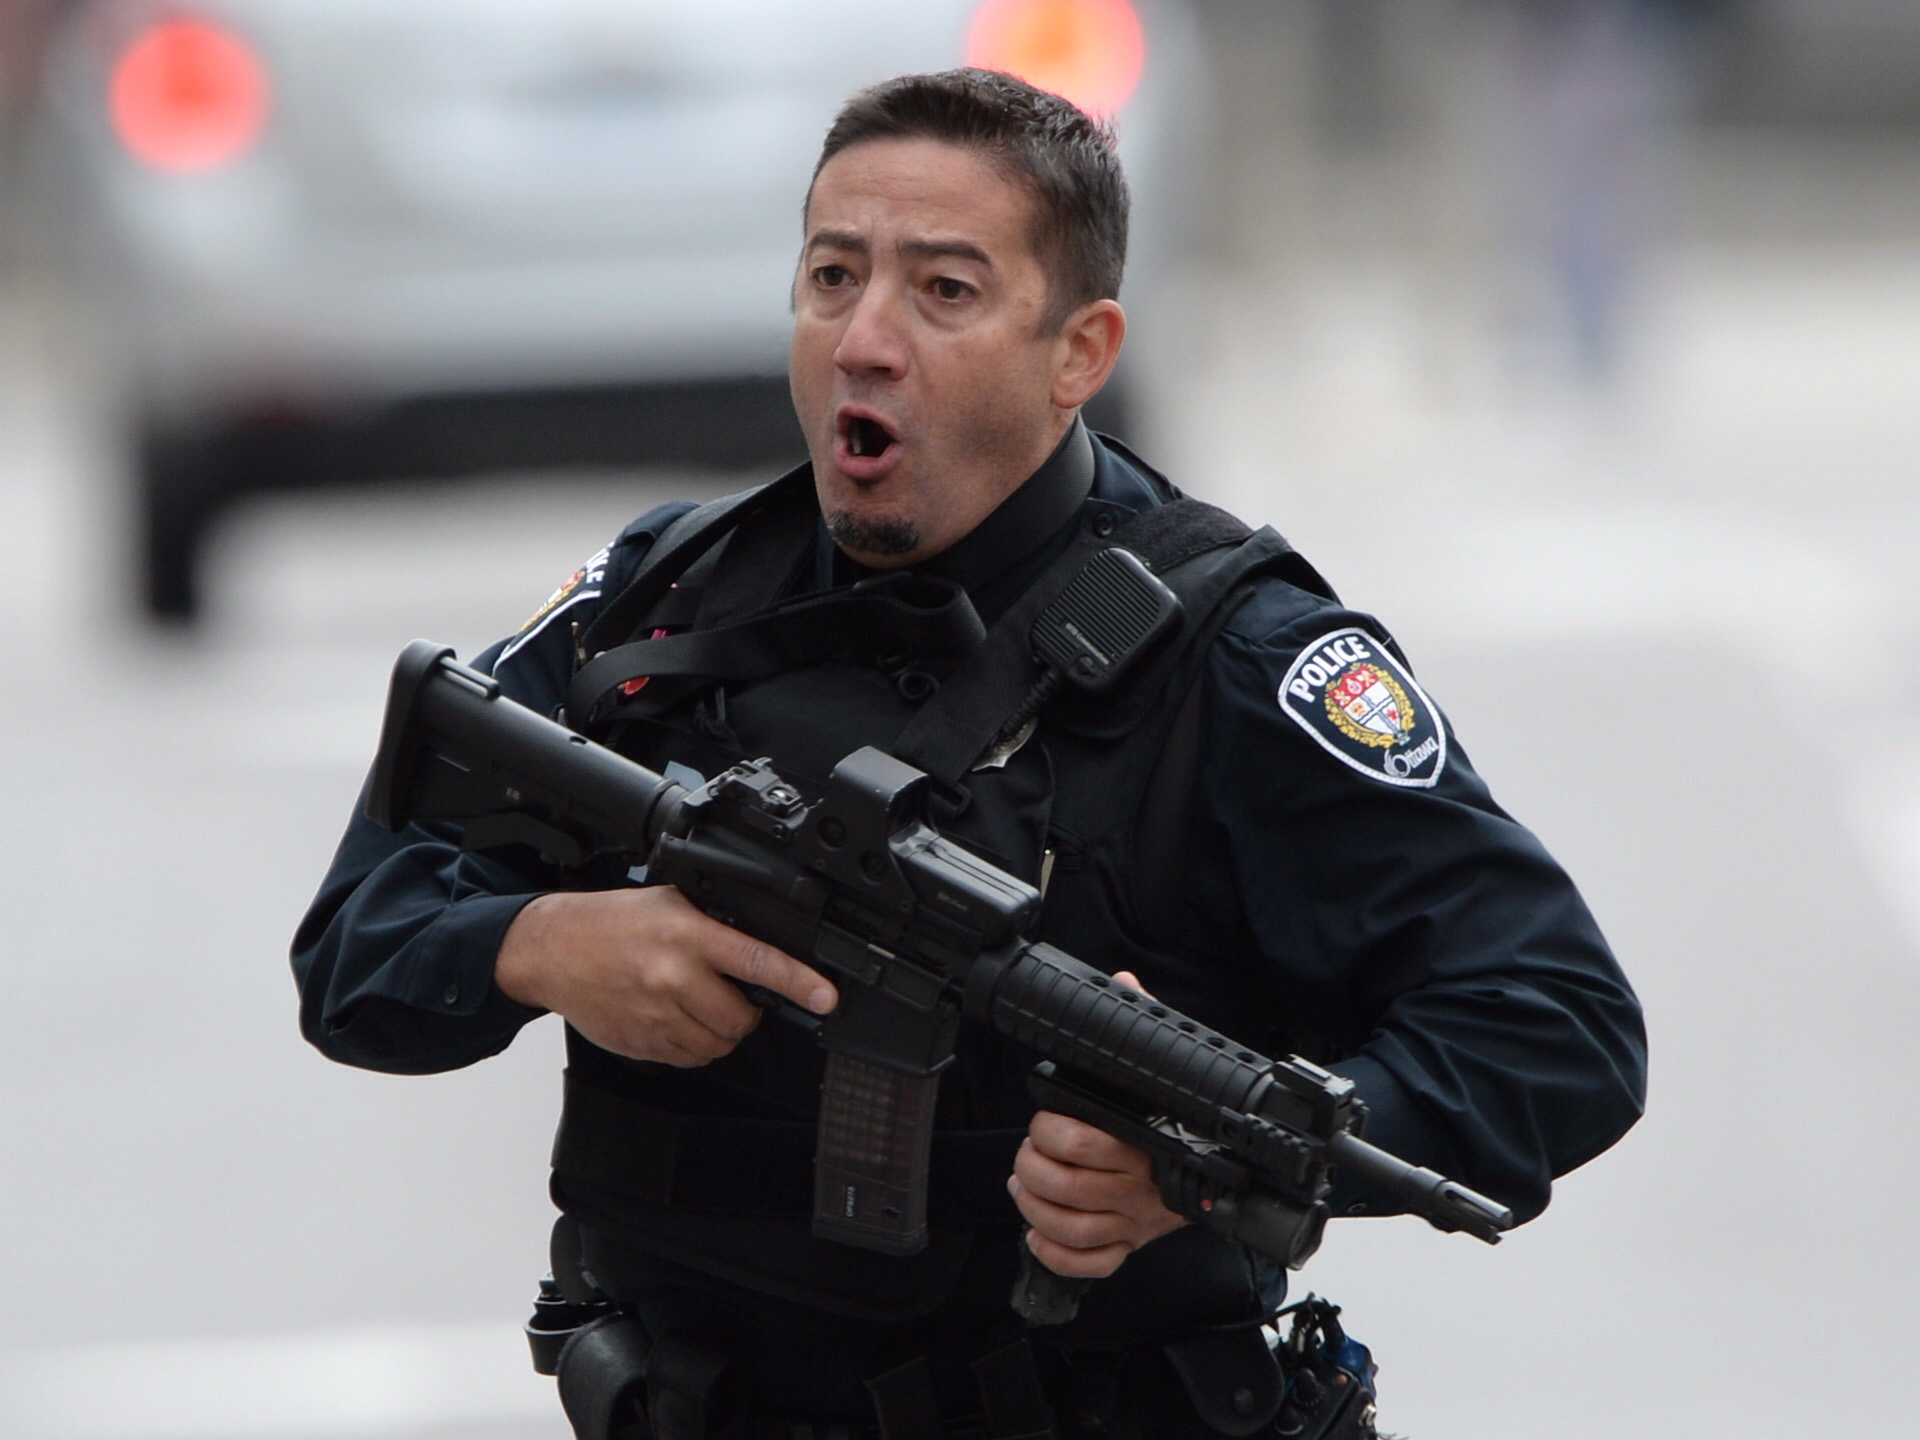 An Ottawa police officer runs with his weapon drawn in Ottawa on Wednesday Oct.22, 2014. (Sean Kilpatrick / The Canadian Press)